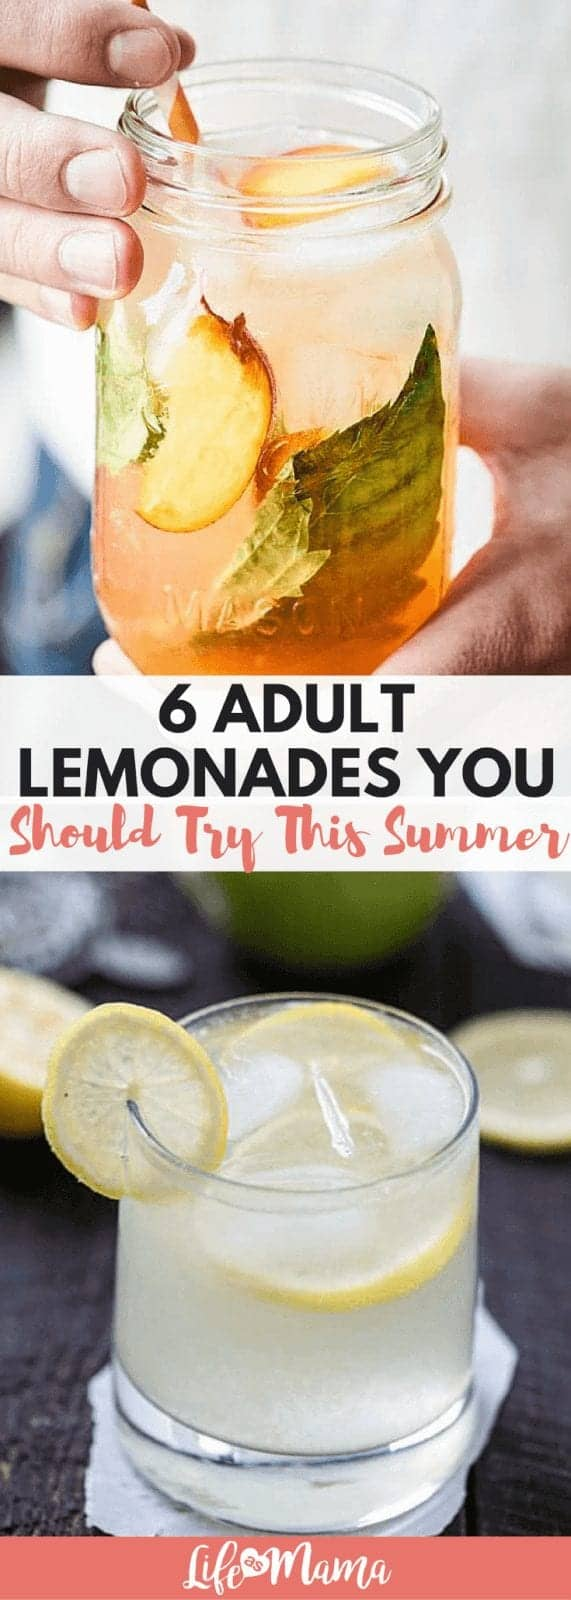 adult lemonades